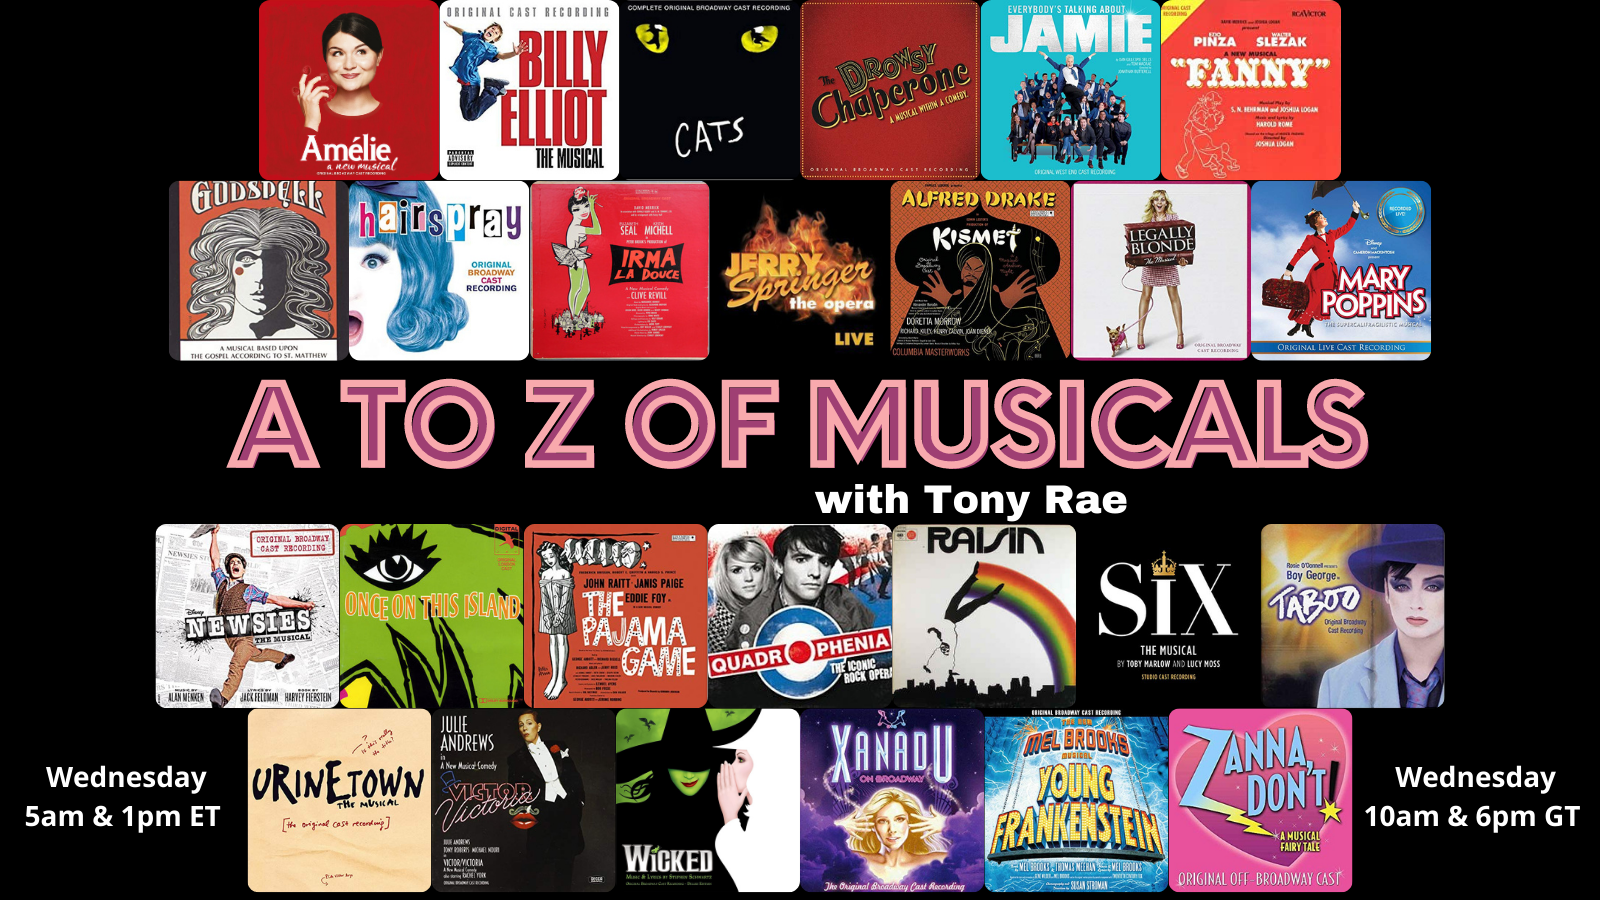 Art for A to Z of Musicals by Host: Tony Rae